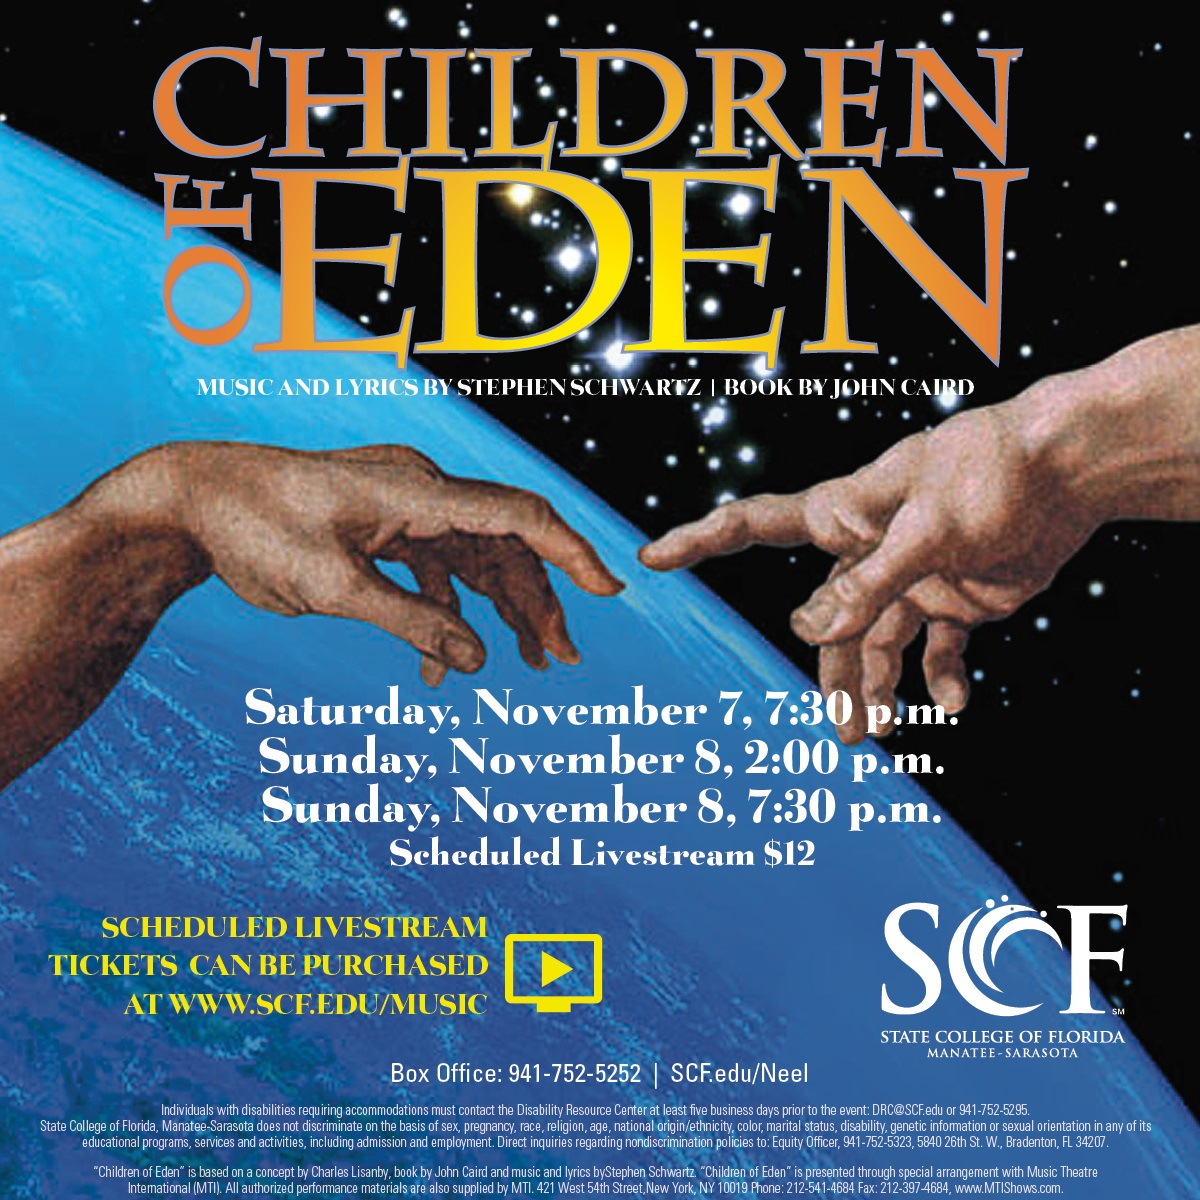 Children of Eden poster - Nov 7 at 7:30pm, Nov 8 at 2pm and 7:30 pm. $12 Livestream.